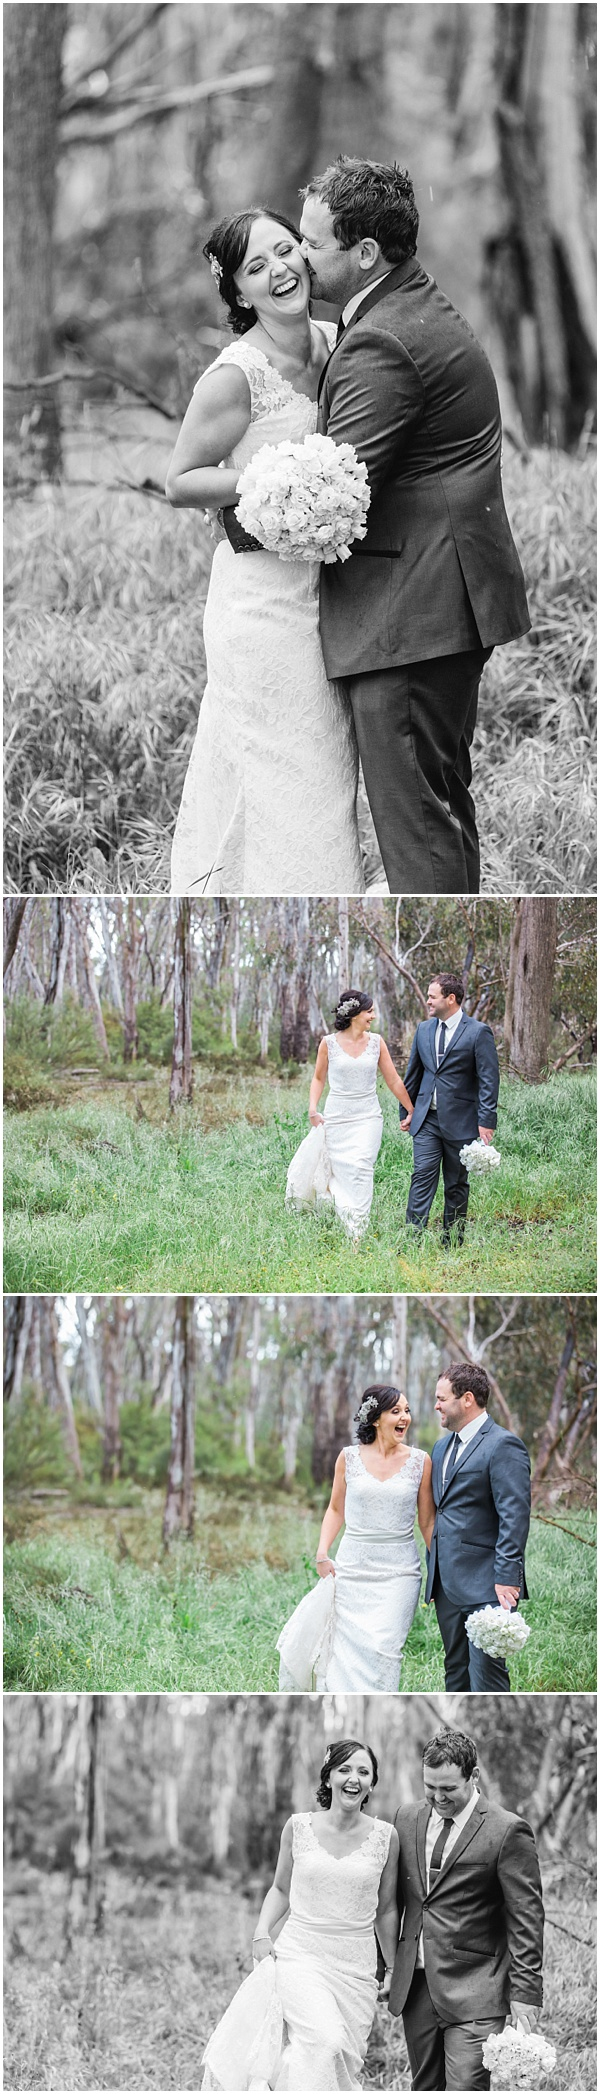 Echuca Moama Wedding Photography_0013